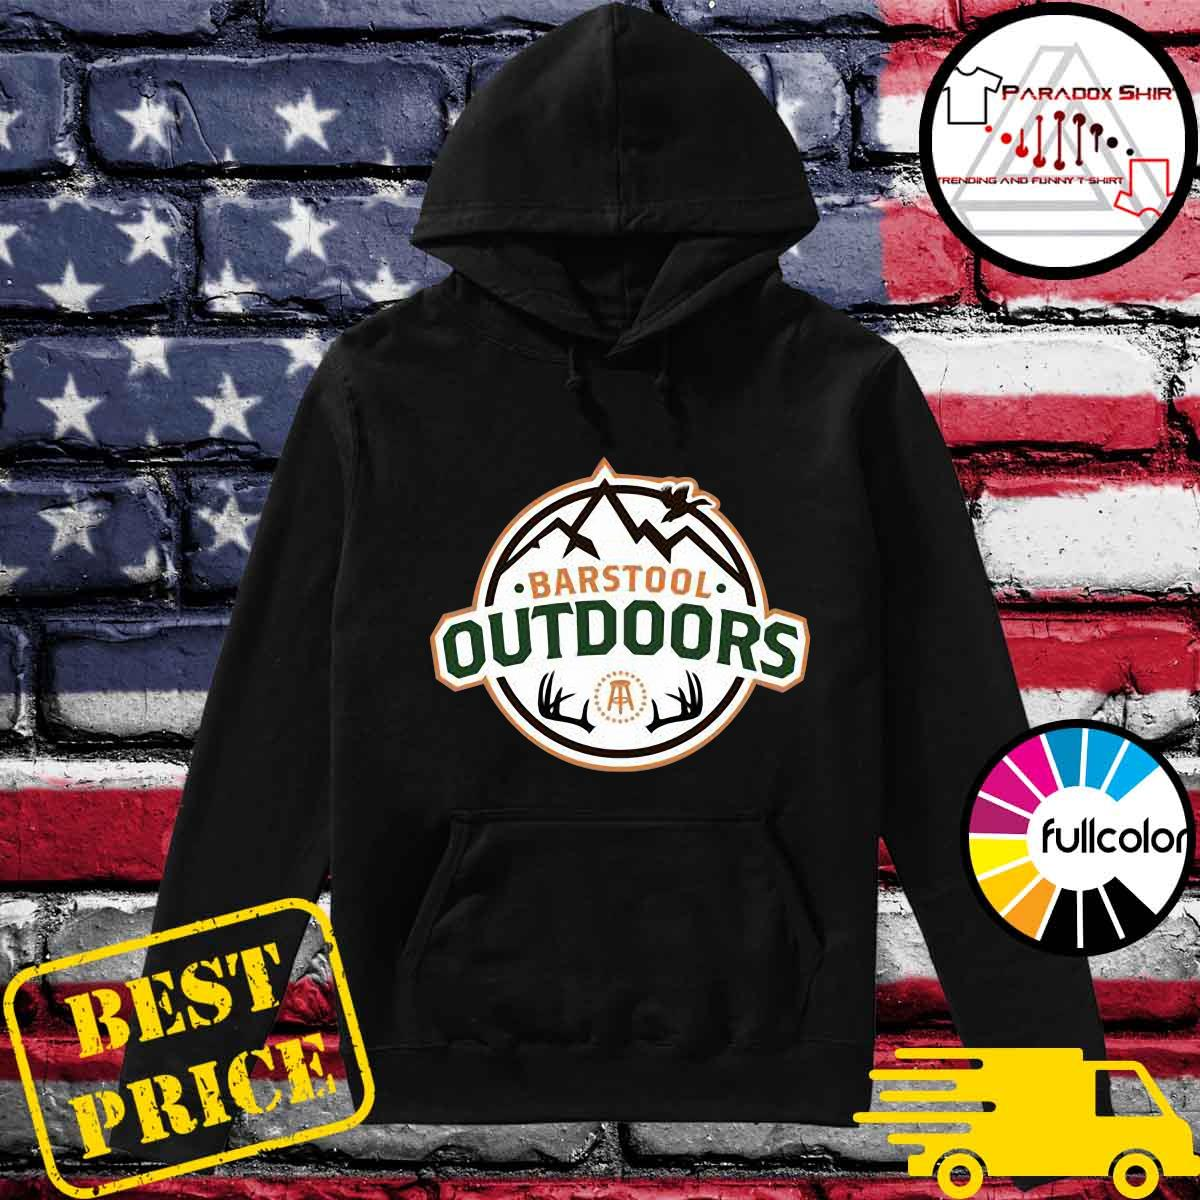 Barstool Outdoors Wilderness Ii Pocket Shirt Hoodie